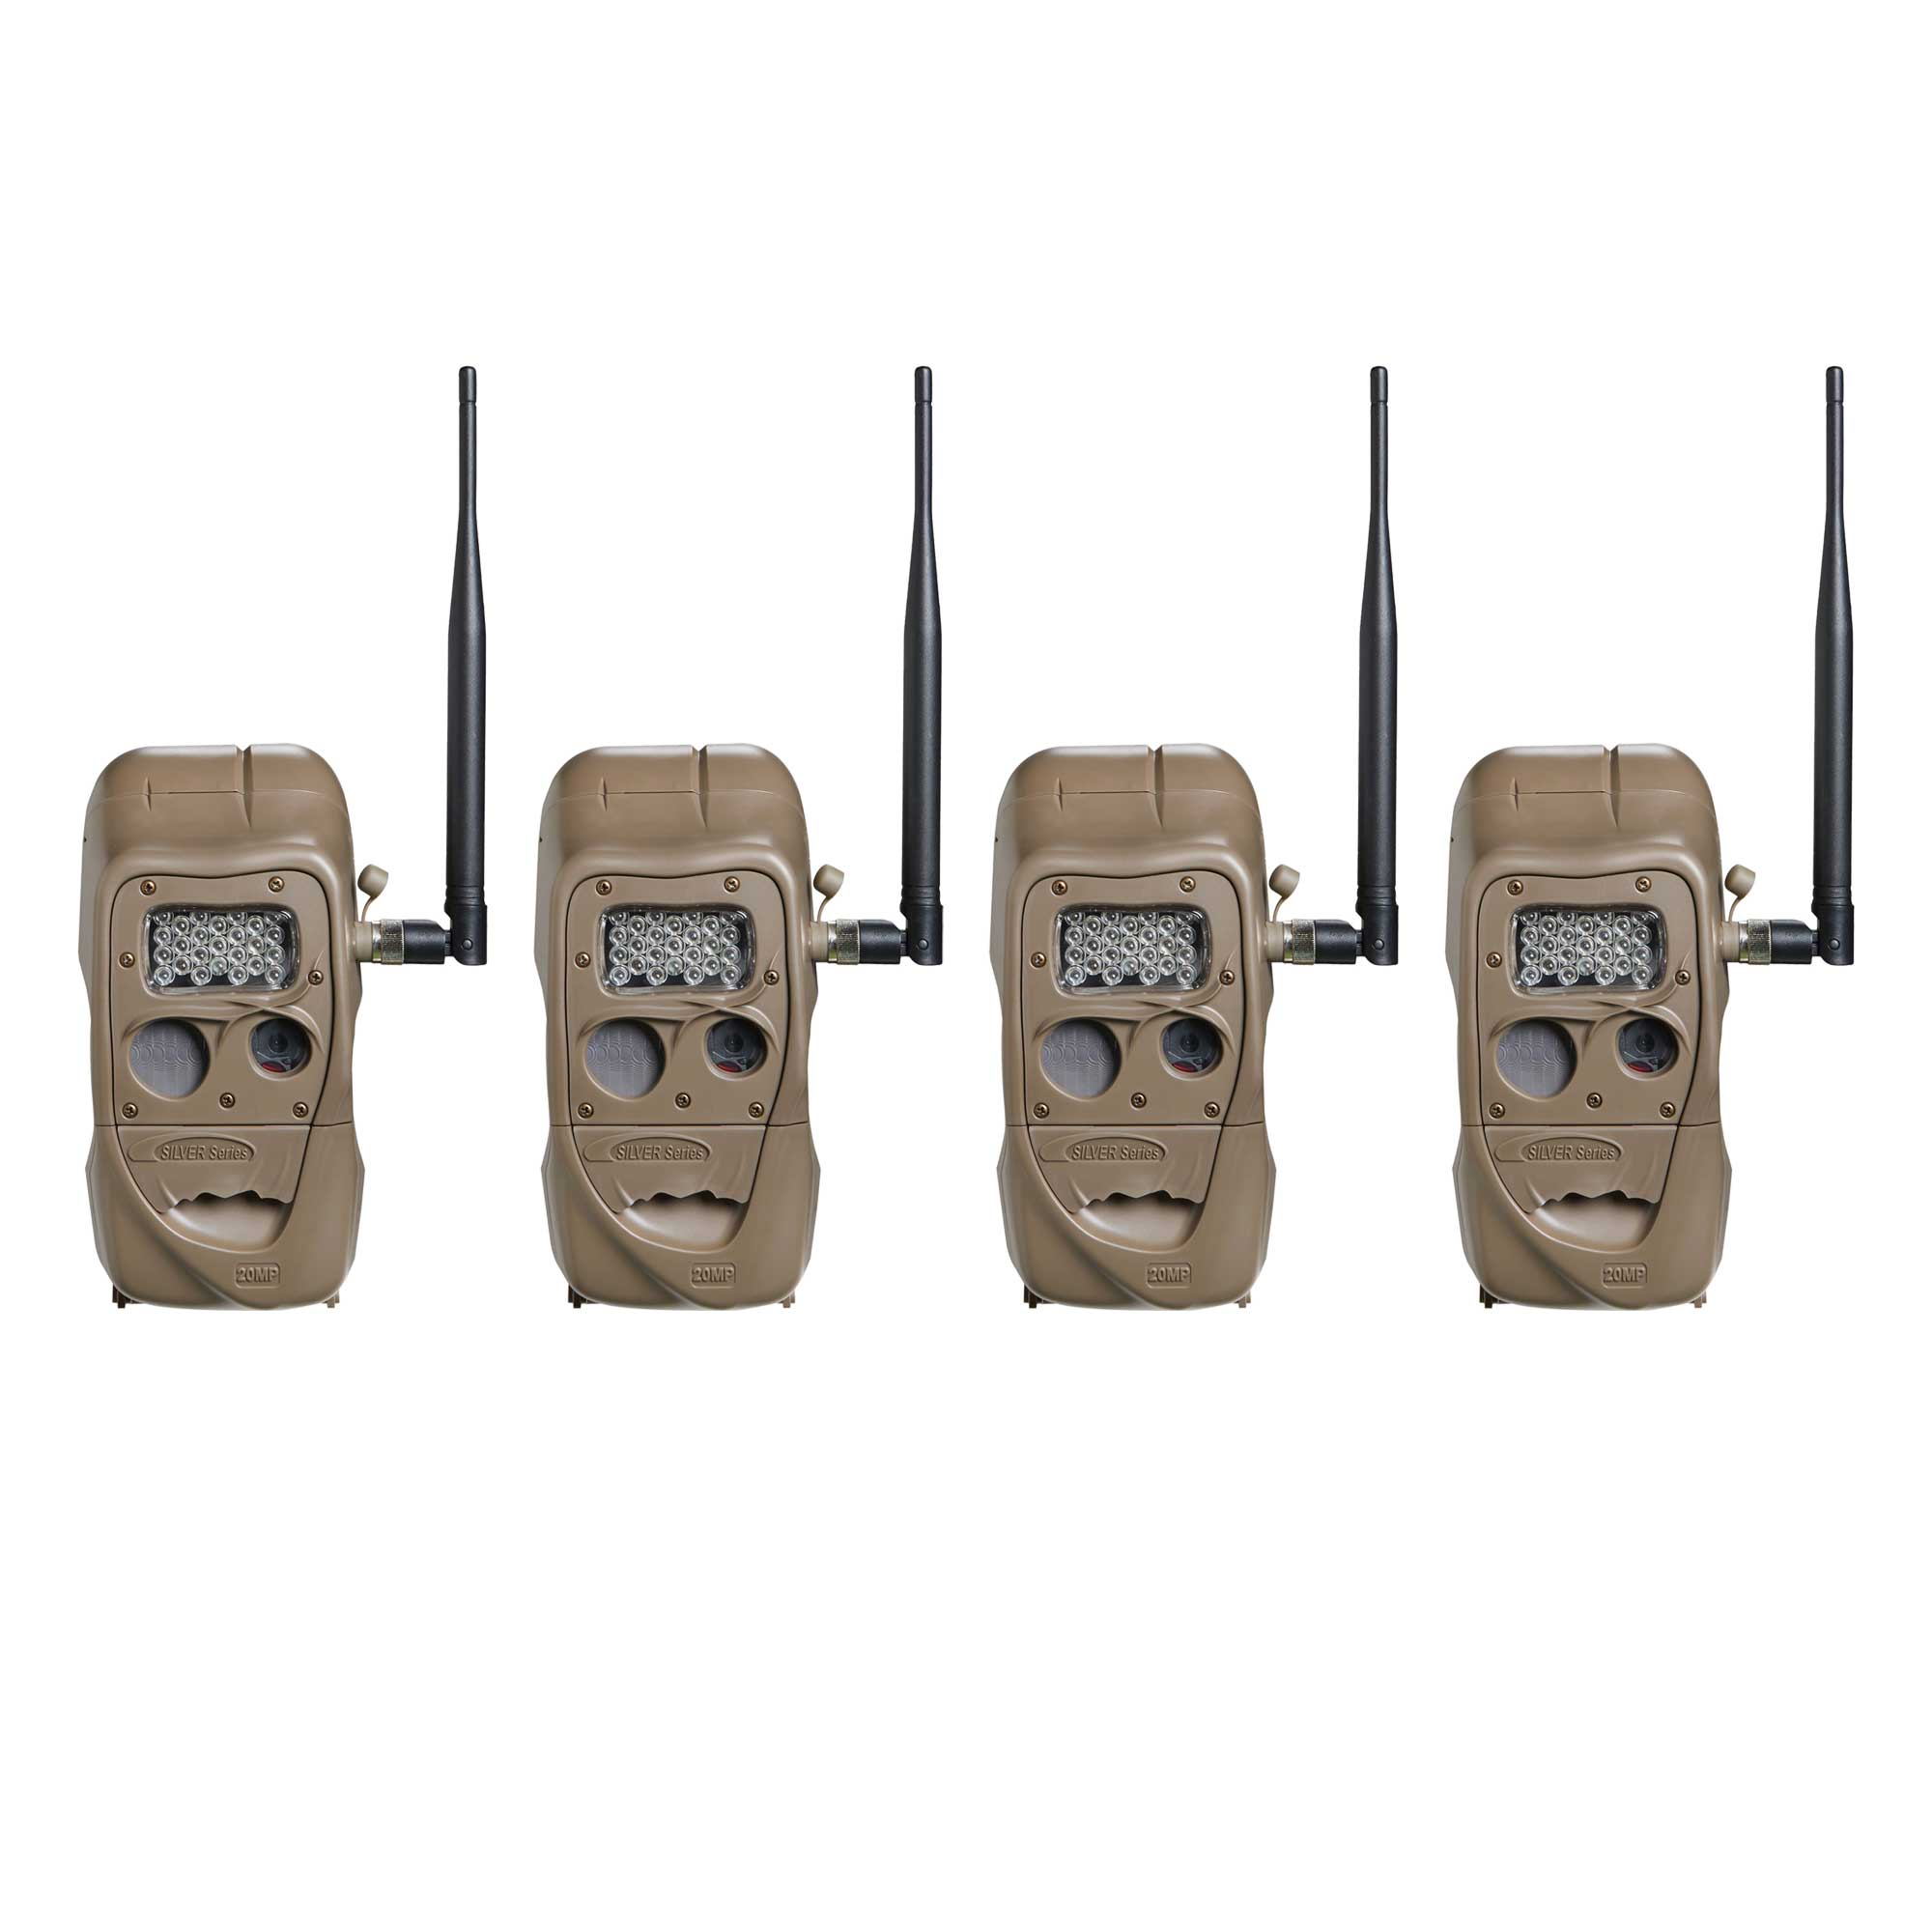 Cuddeback CuddeLink 20MP Long Range Wireless Hunting Game Trail Camera (4 Pack)